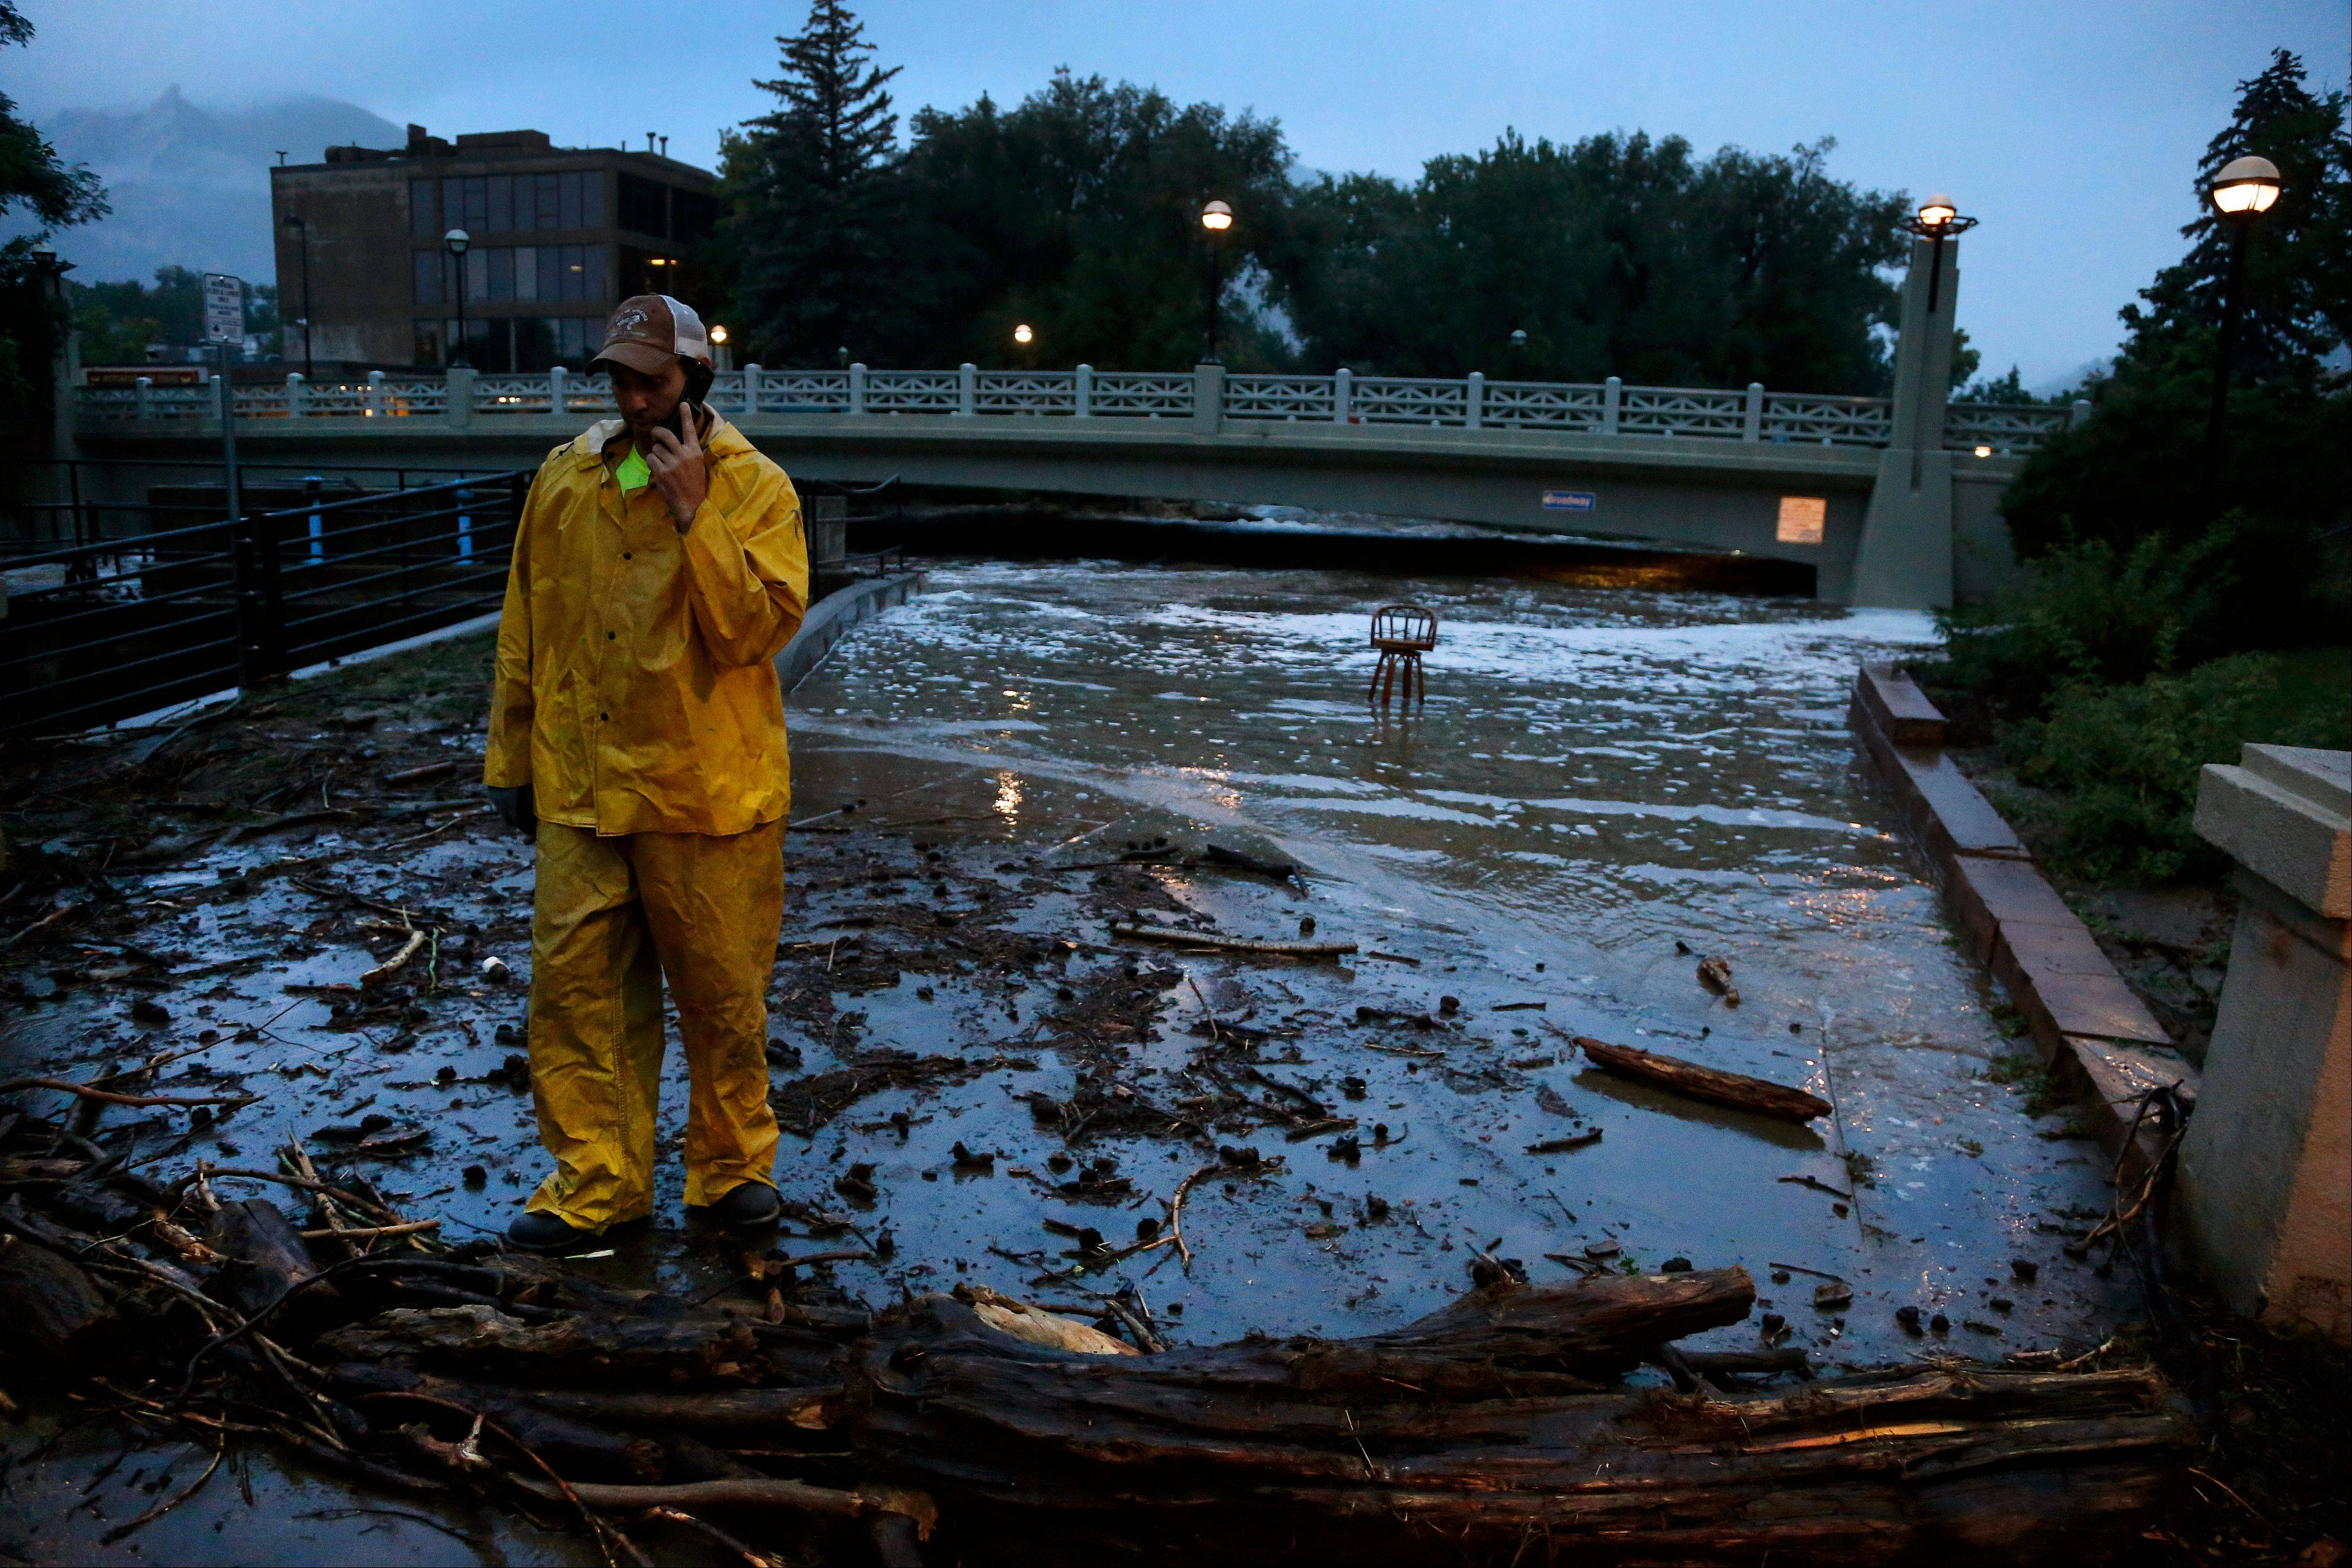 A city worker talks on his phone while surveying high water levels on Boulder Creek following overnight flash flooding in downtown Boulder, Colo., Thursday, Sept 12, 2013. Flash flooding in Colorado has left two people dead and the widespread high waters are keeping search and rescue teams from reaching stranded residents and motorists in Boulder and nearby mountain communities as heavy rains hammered northern Colorado.